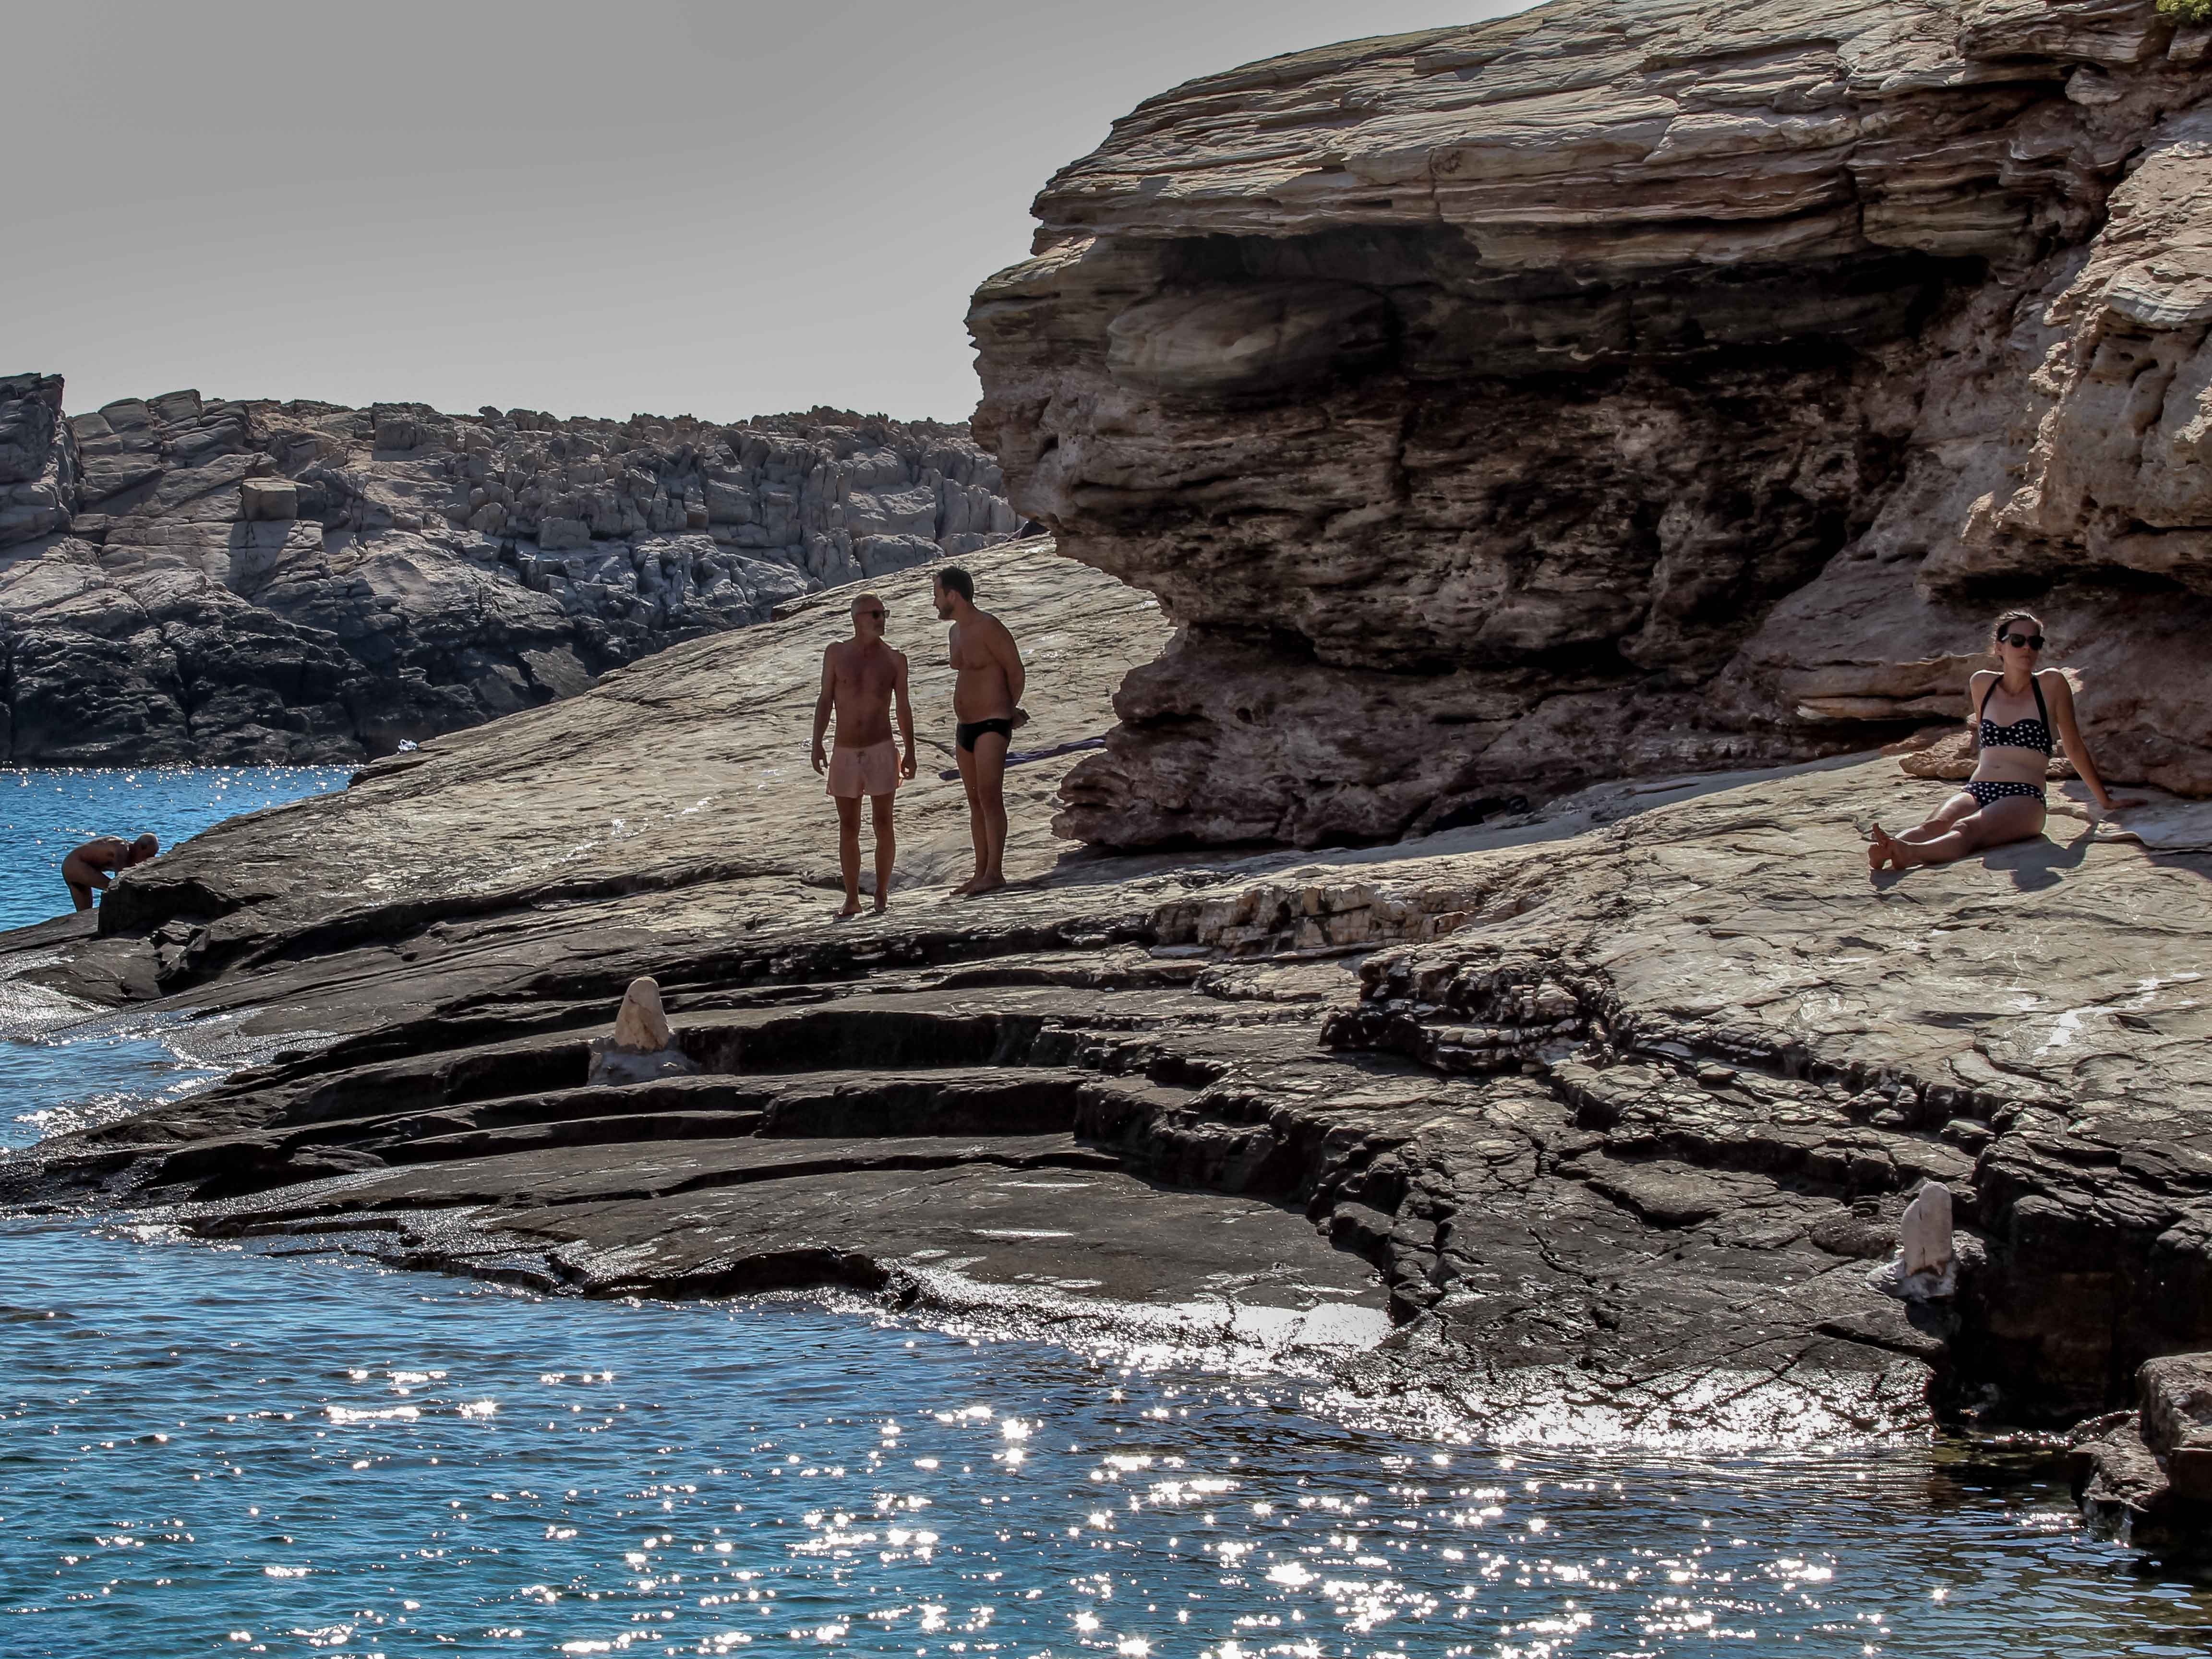 While not attracting the throngs of tourists who visit more popular islands in the Cyclades, this tiny gem filled with warm, secluded coves is excellent for soaking up the sun and swimming.